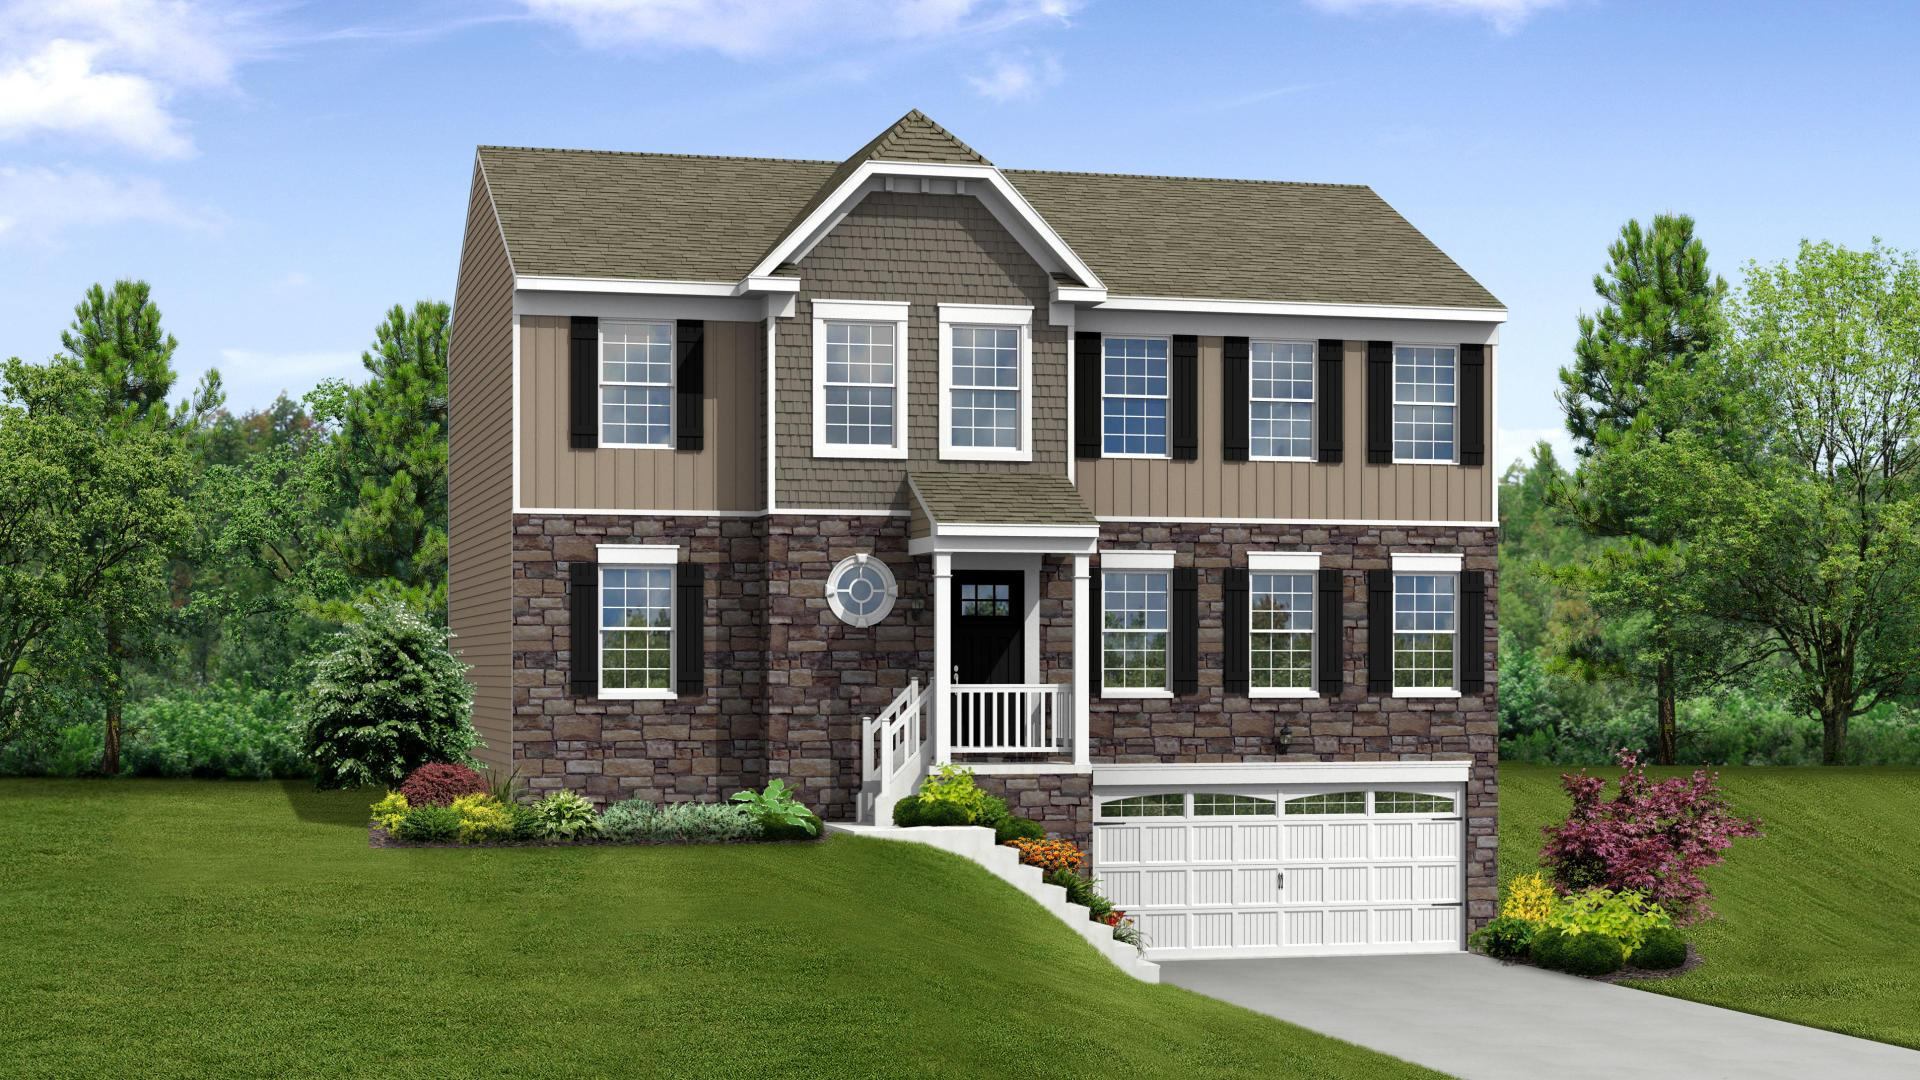 Exterior:Elevation: A Opt New England Inspired Facade, Porch, & Garage Door